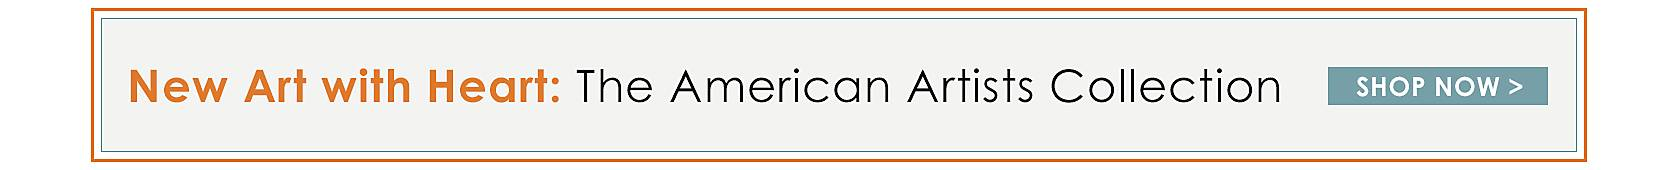 New Art with Heart: Shop the American Artists Collection